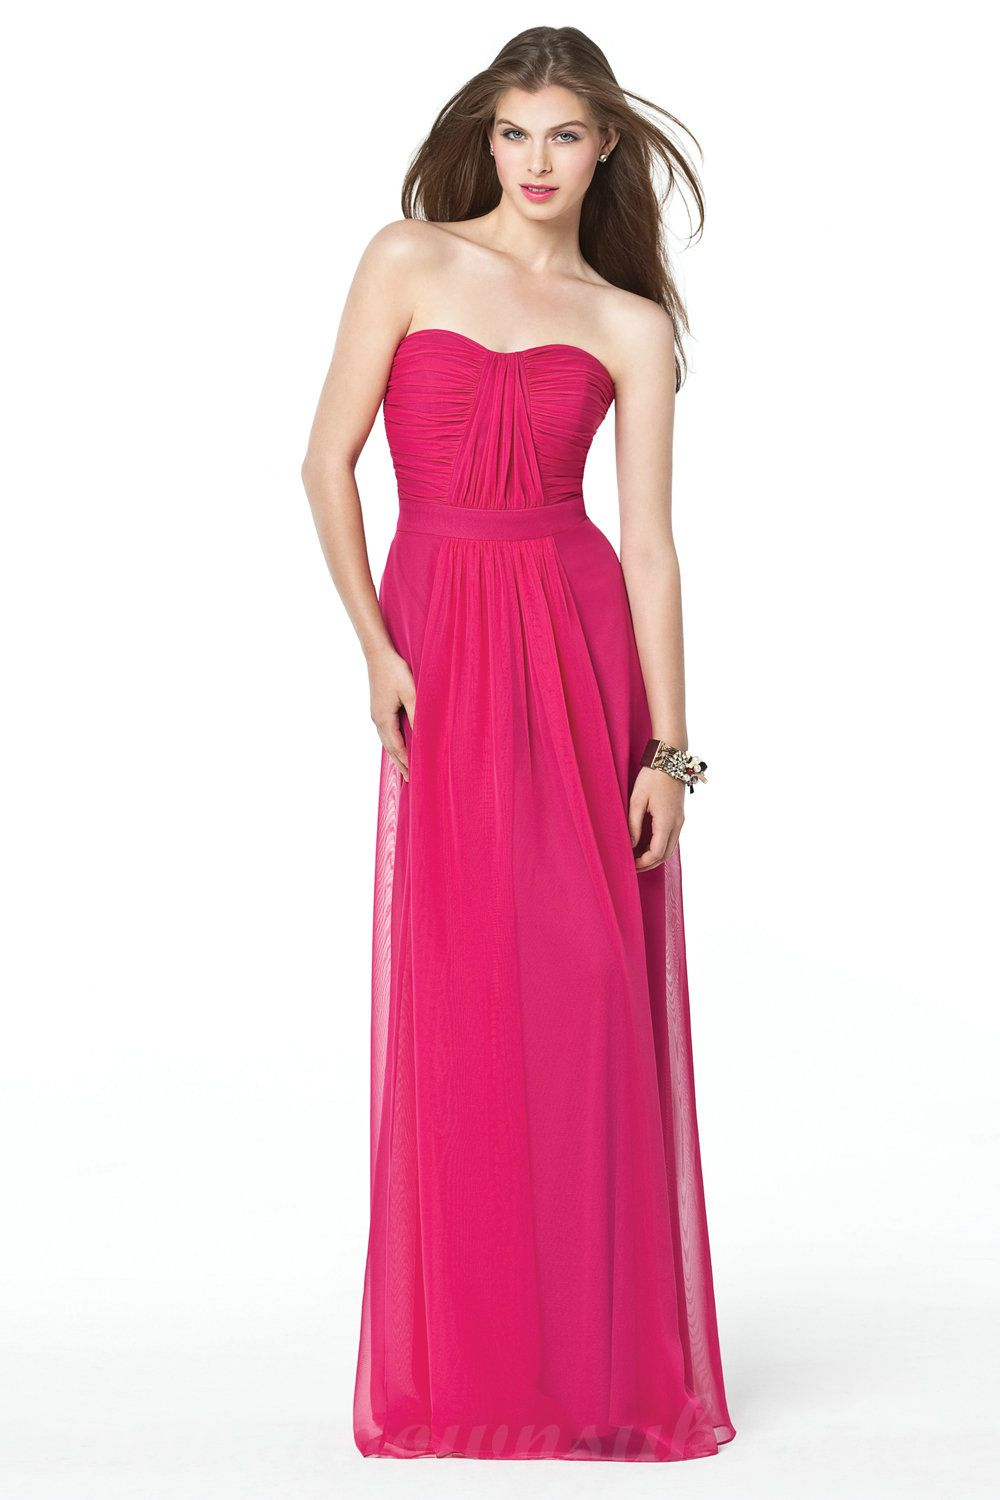 Fuschia Pink Bridesmaid Dresses Uk | Top 100 Pink bridesmaid ...